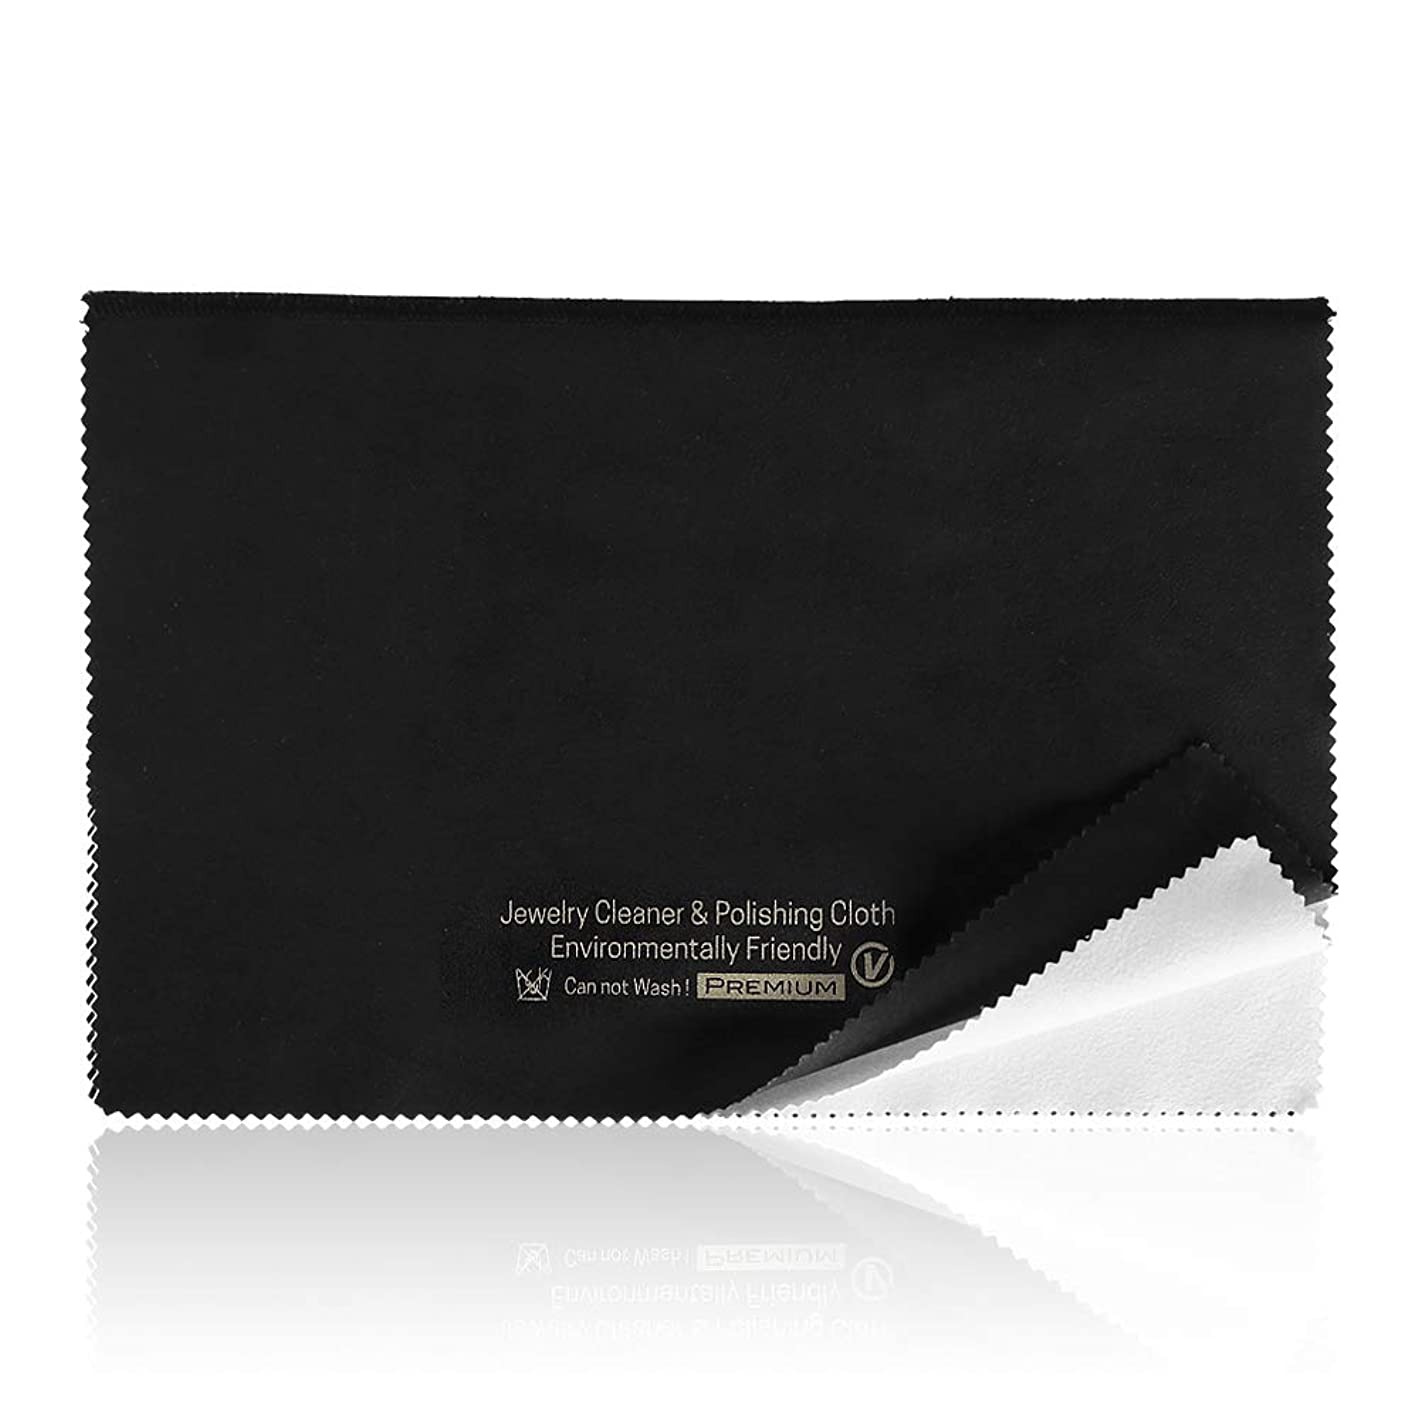 Jewelry Polishing Cloth for Silver/Gold/Platinum Cleaning -Soft and Recycled Microfiber Cloths,Jewelry Cleaner by VISEMAN j04887525244668